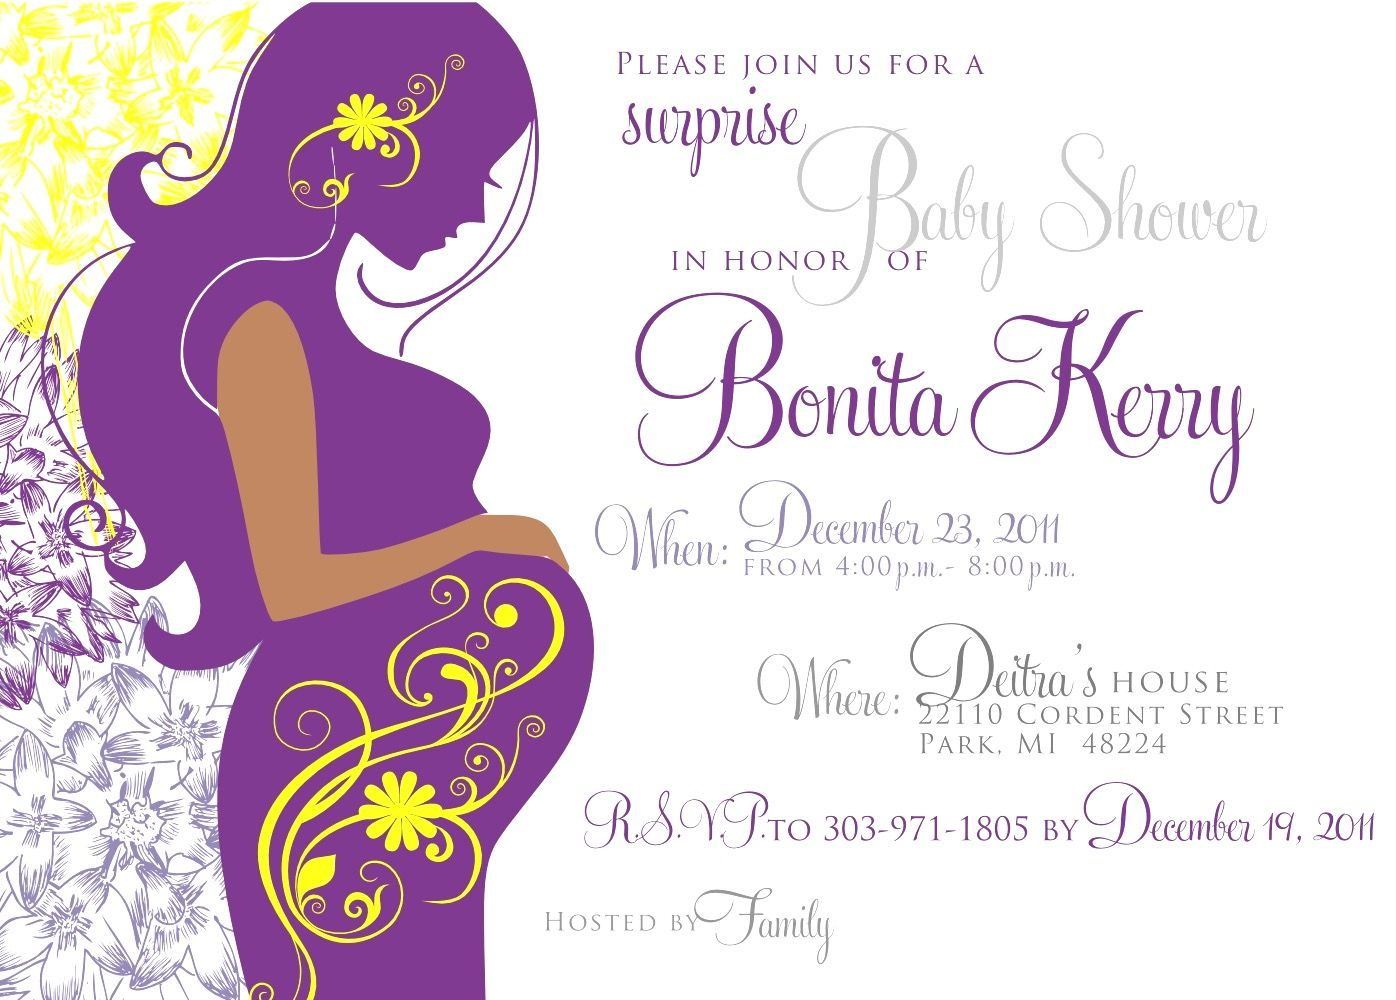 Baby Shower Invitations For Word Templates Mesmerizing Free Baby Shower Invitation Templates For Word Www Awalkinhell .